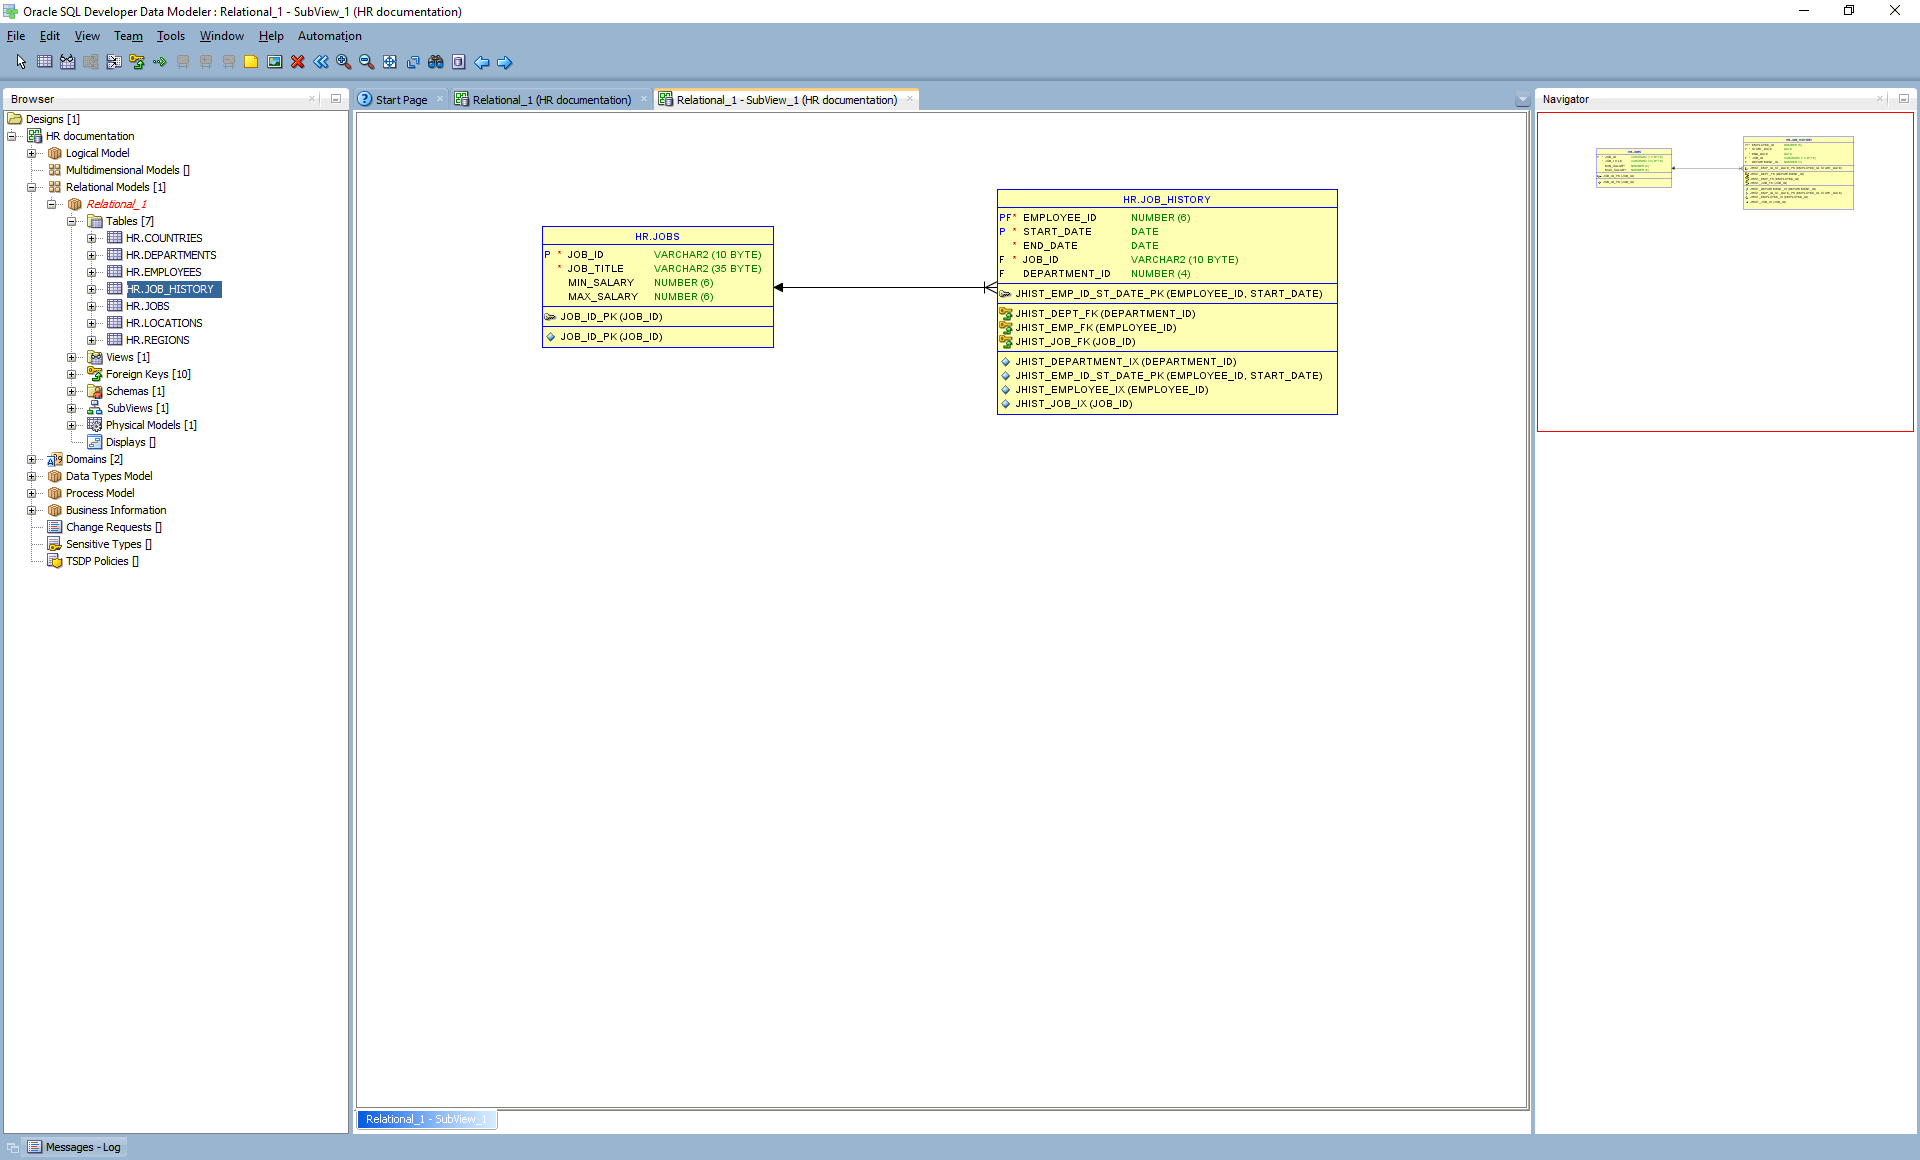 pl sql developer er diagram eubacteria and archaebacteria venn how to generate database documentation with oracle add a table the subview just drag it from list of tables in relational model drop on pane i have added two my